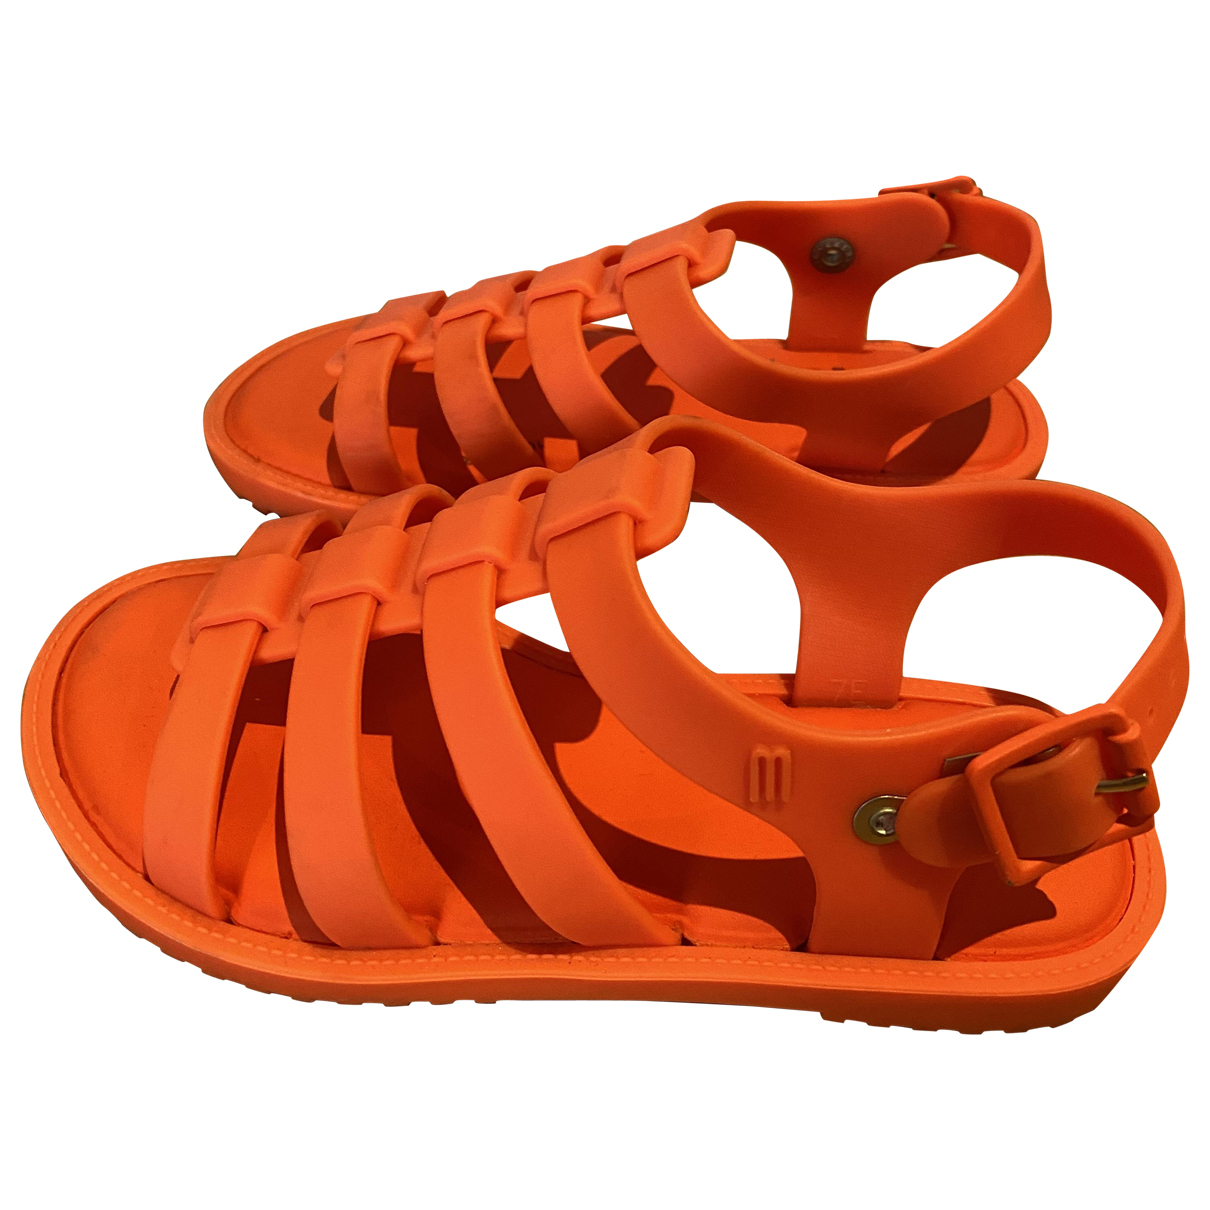 Melissa N Orange Rubber Sandals for Kids 11 US